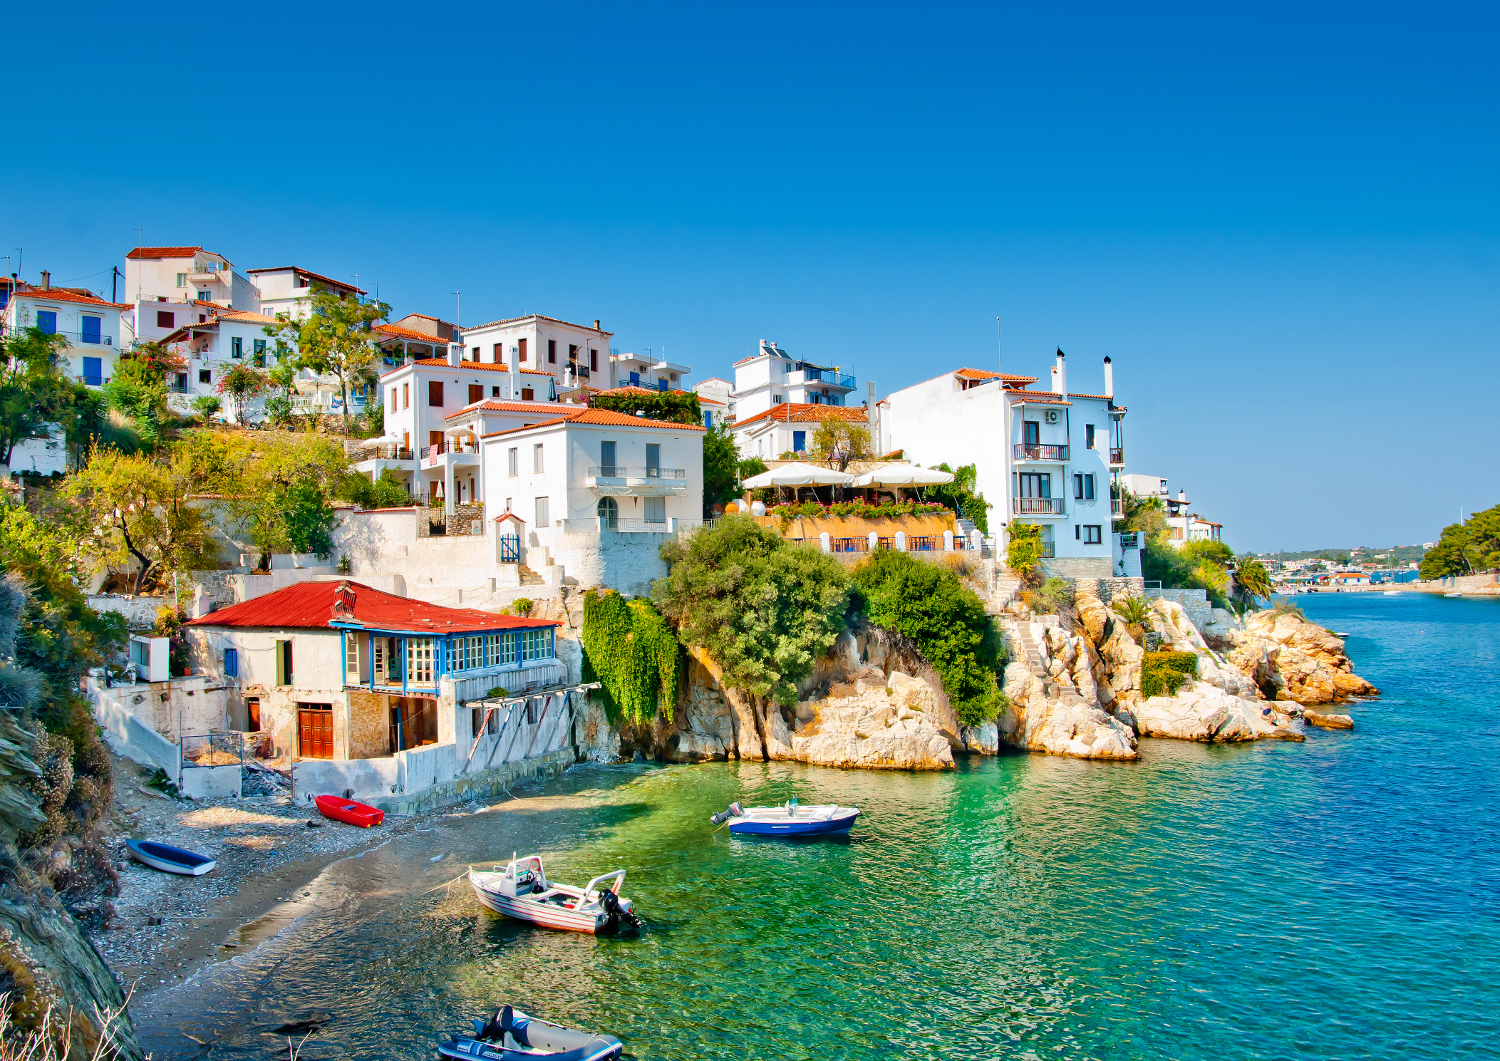 old-part-of-town-in-island-Skiathos-in-Greece.pg_